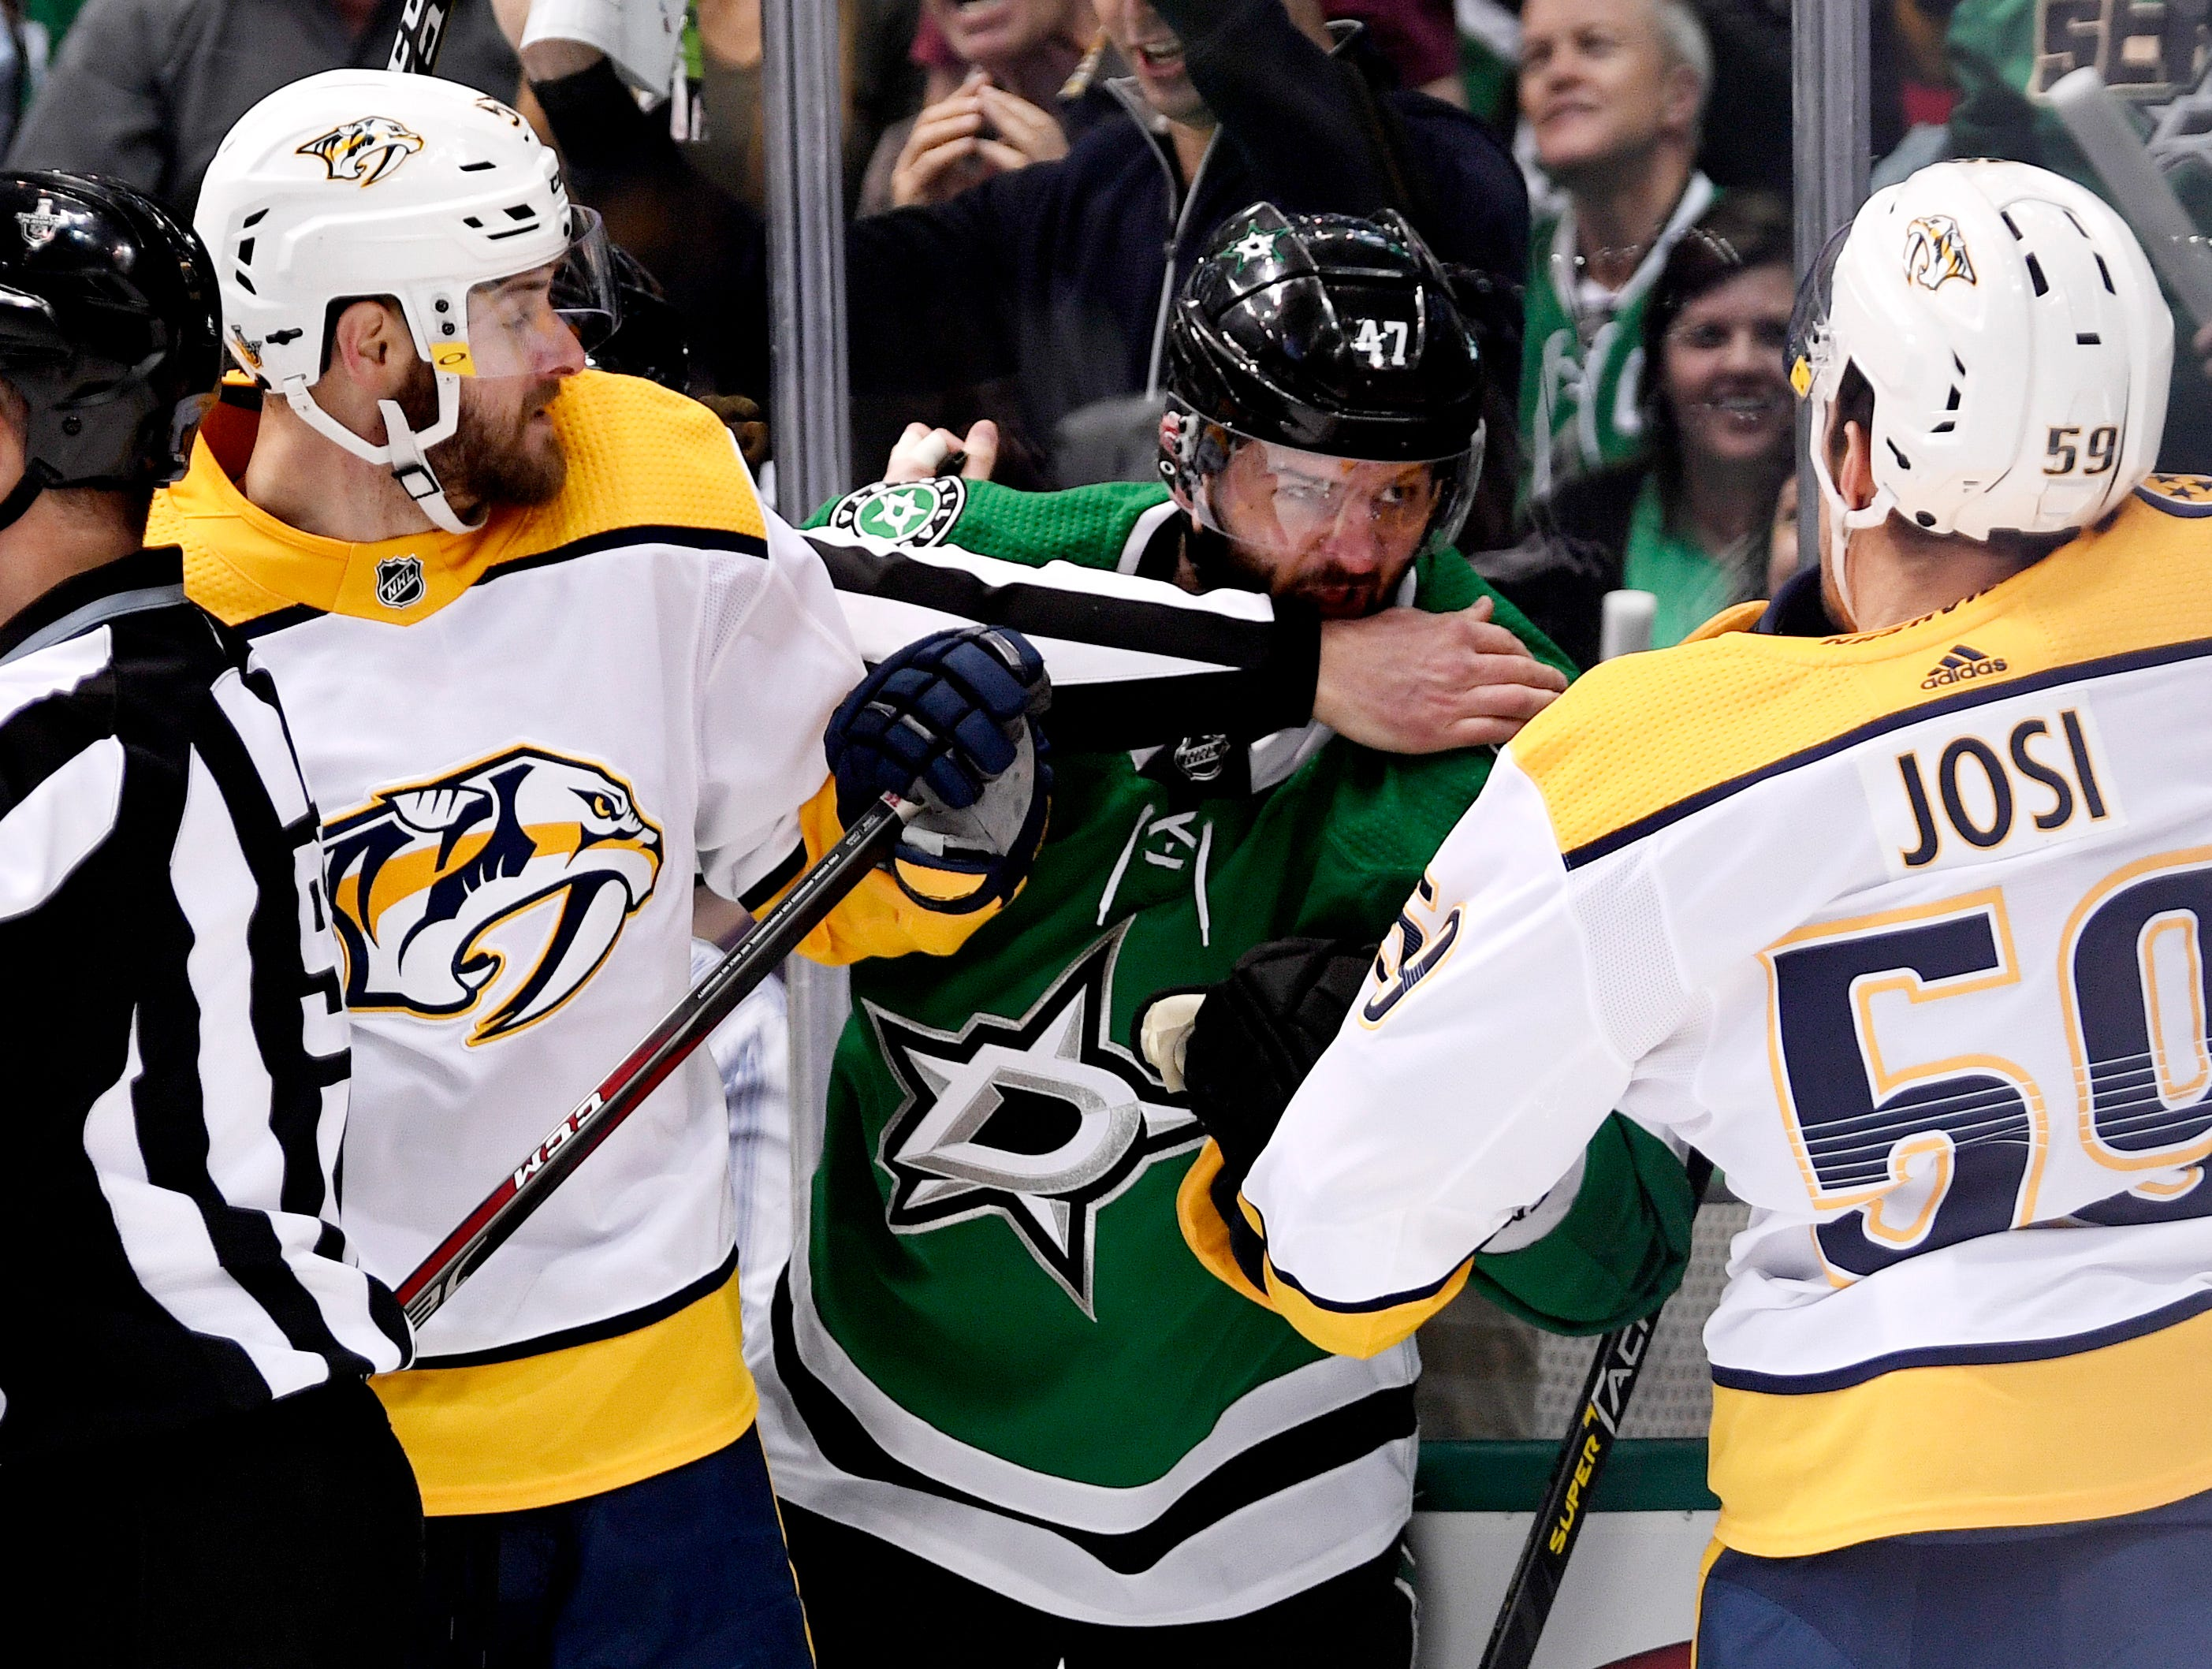 Nashville Predators left wing Austin Watson (51) and defenseman Roman Josi (59) fight Dallas Stars right wing Alexander Radulov (47) during the first period of the divisional semifinal game at the American Airlines Center in Dallas, Texas., Monday, April 15, 2019.